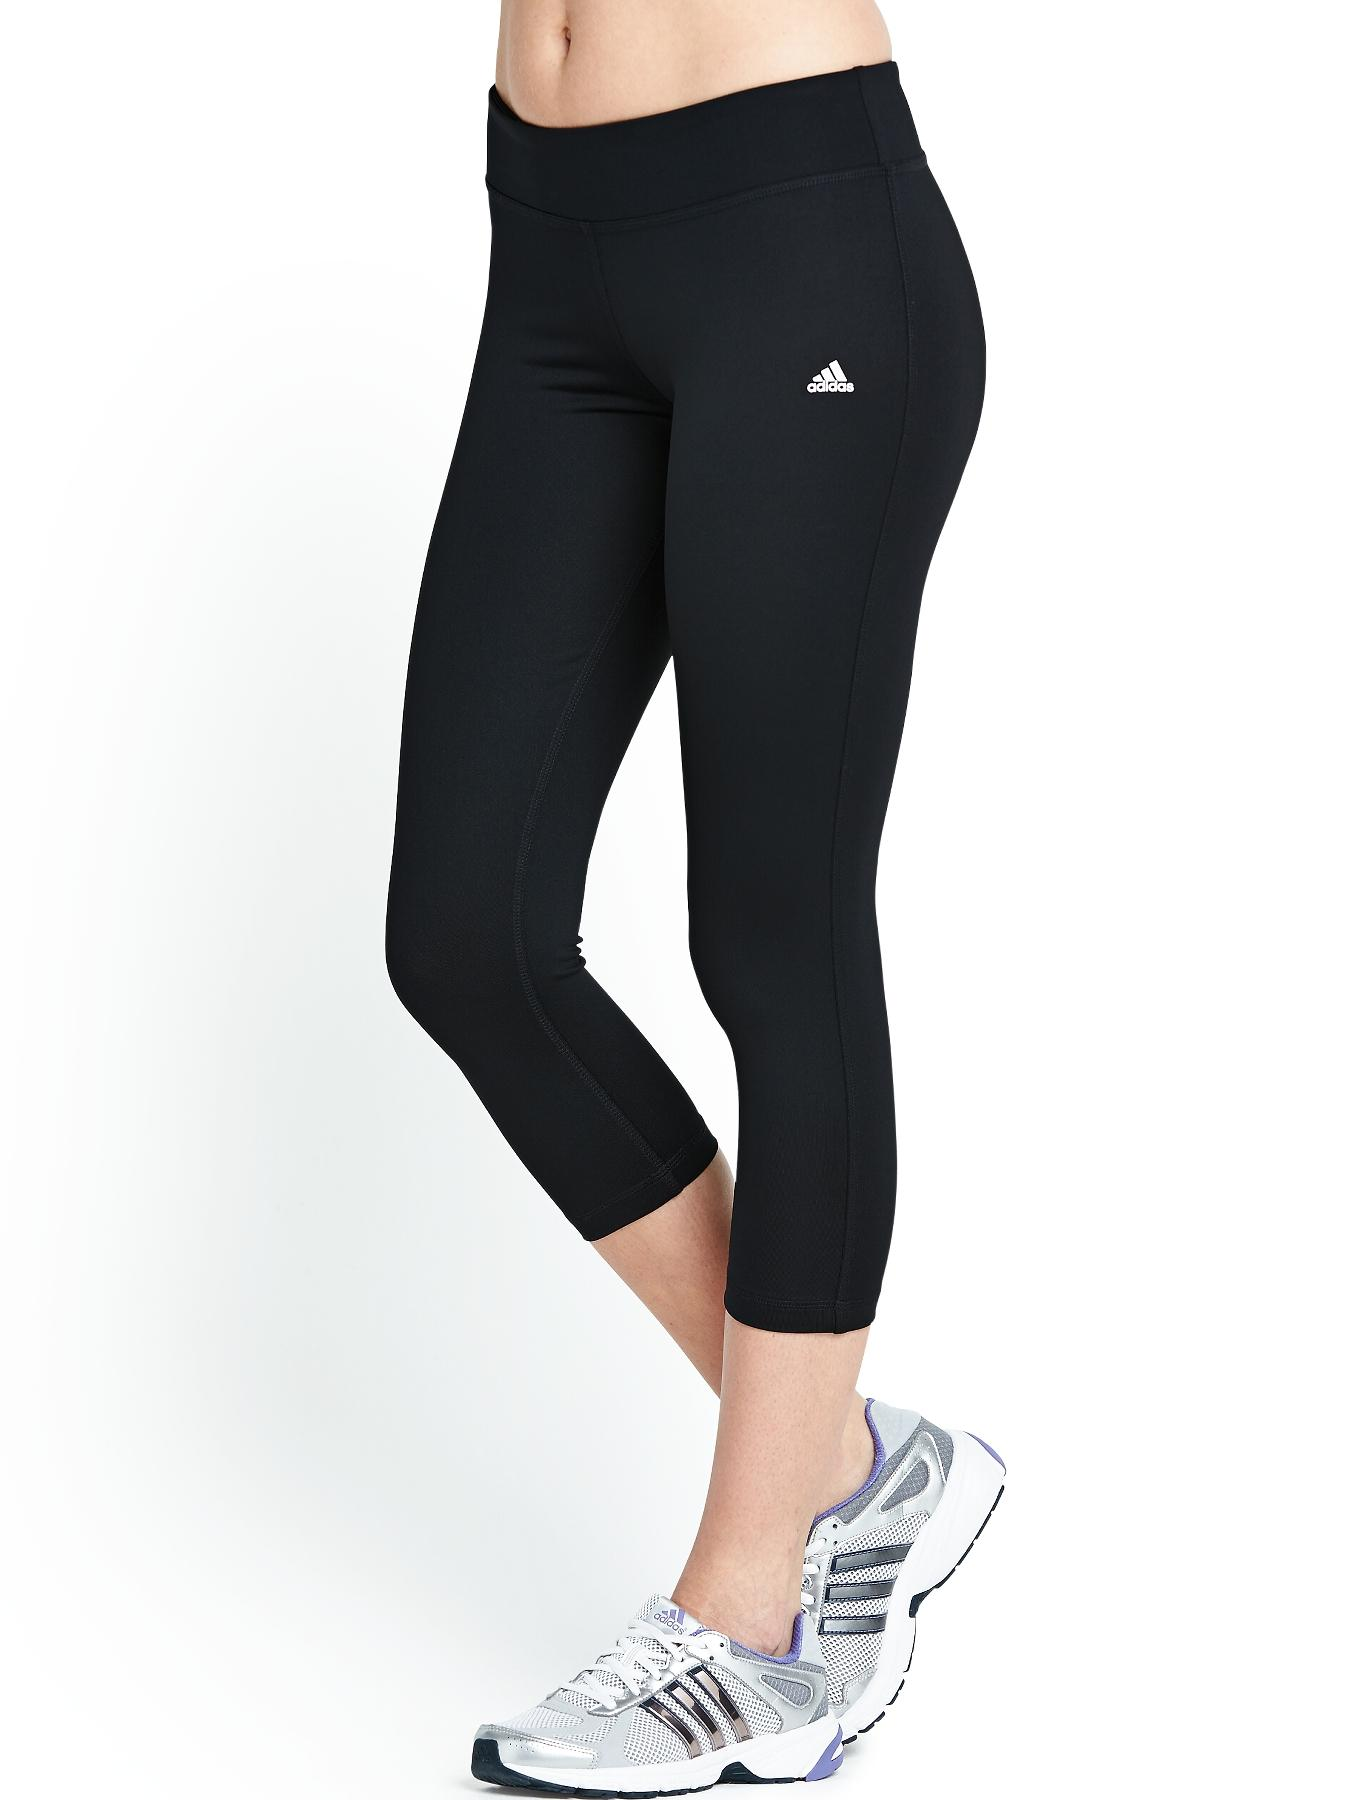 Clima Essentials 3/4 Tights, Black